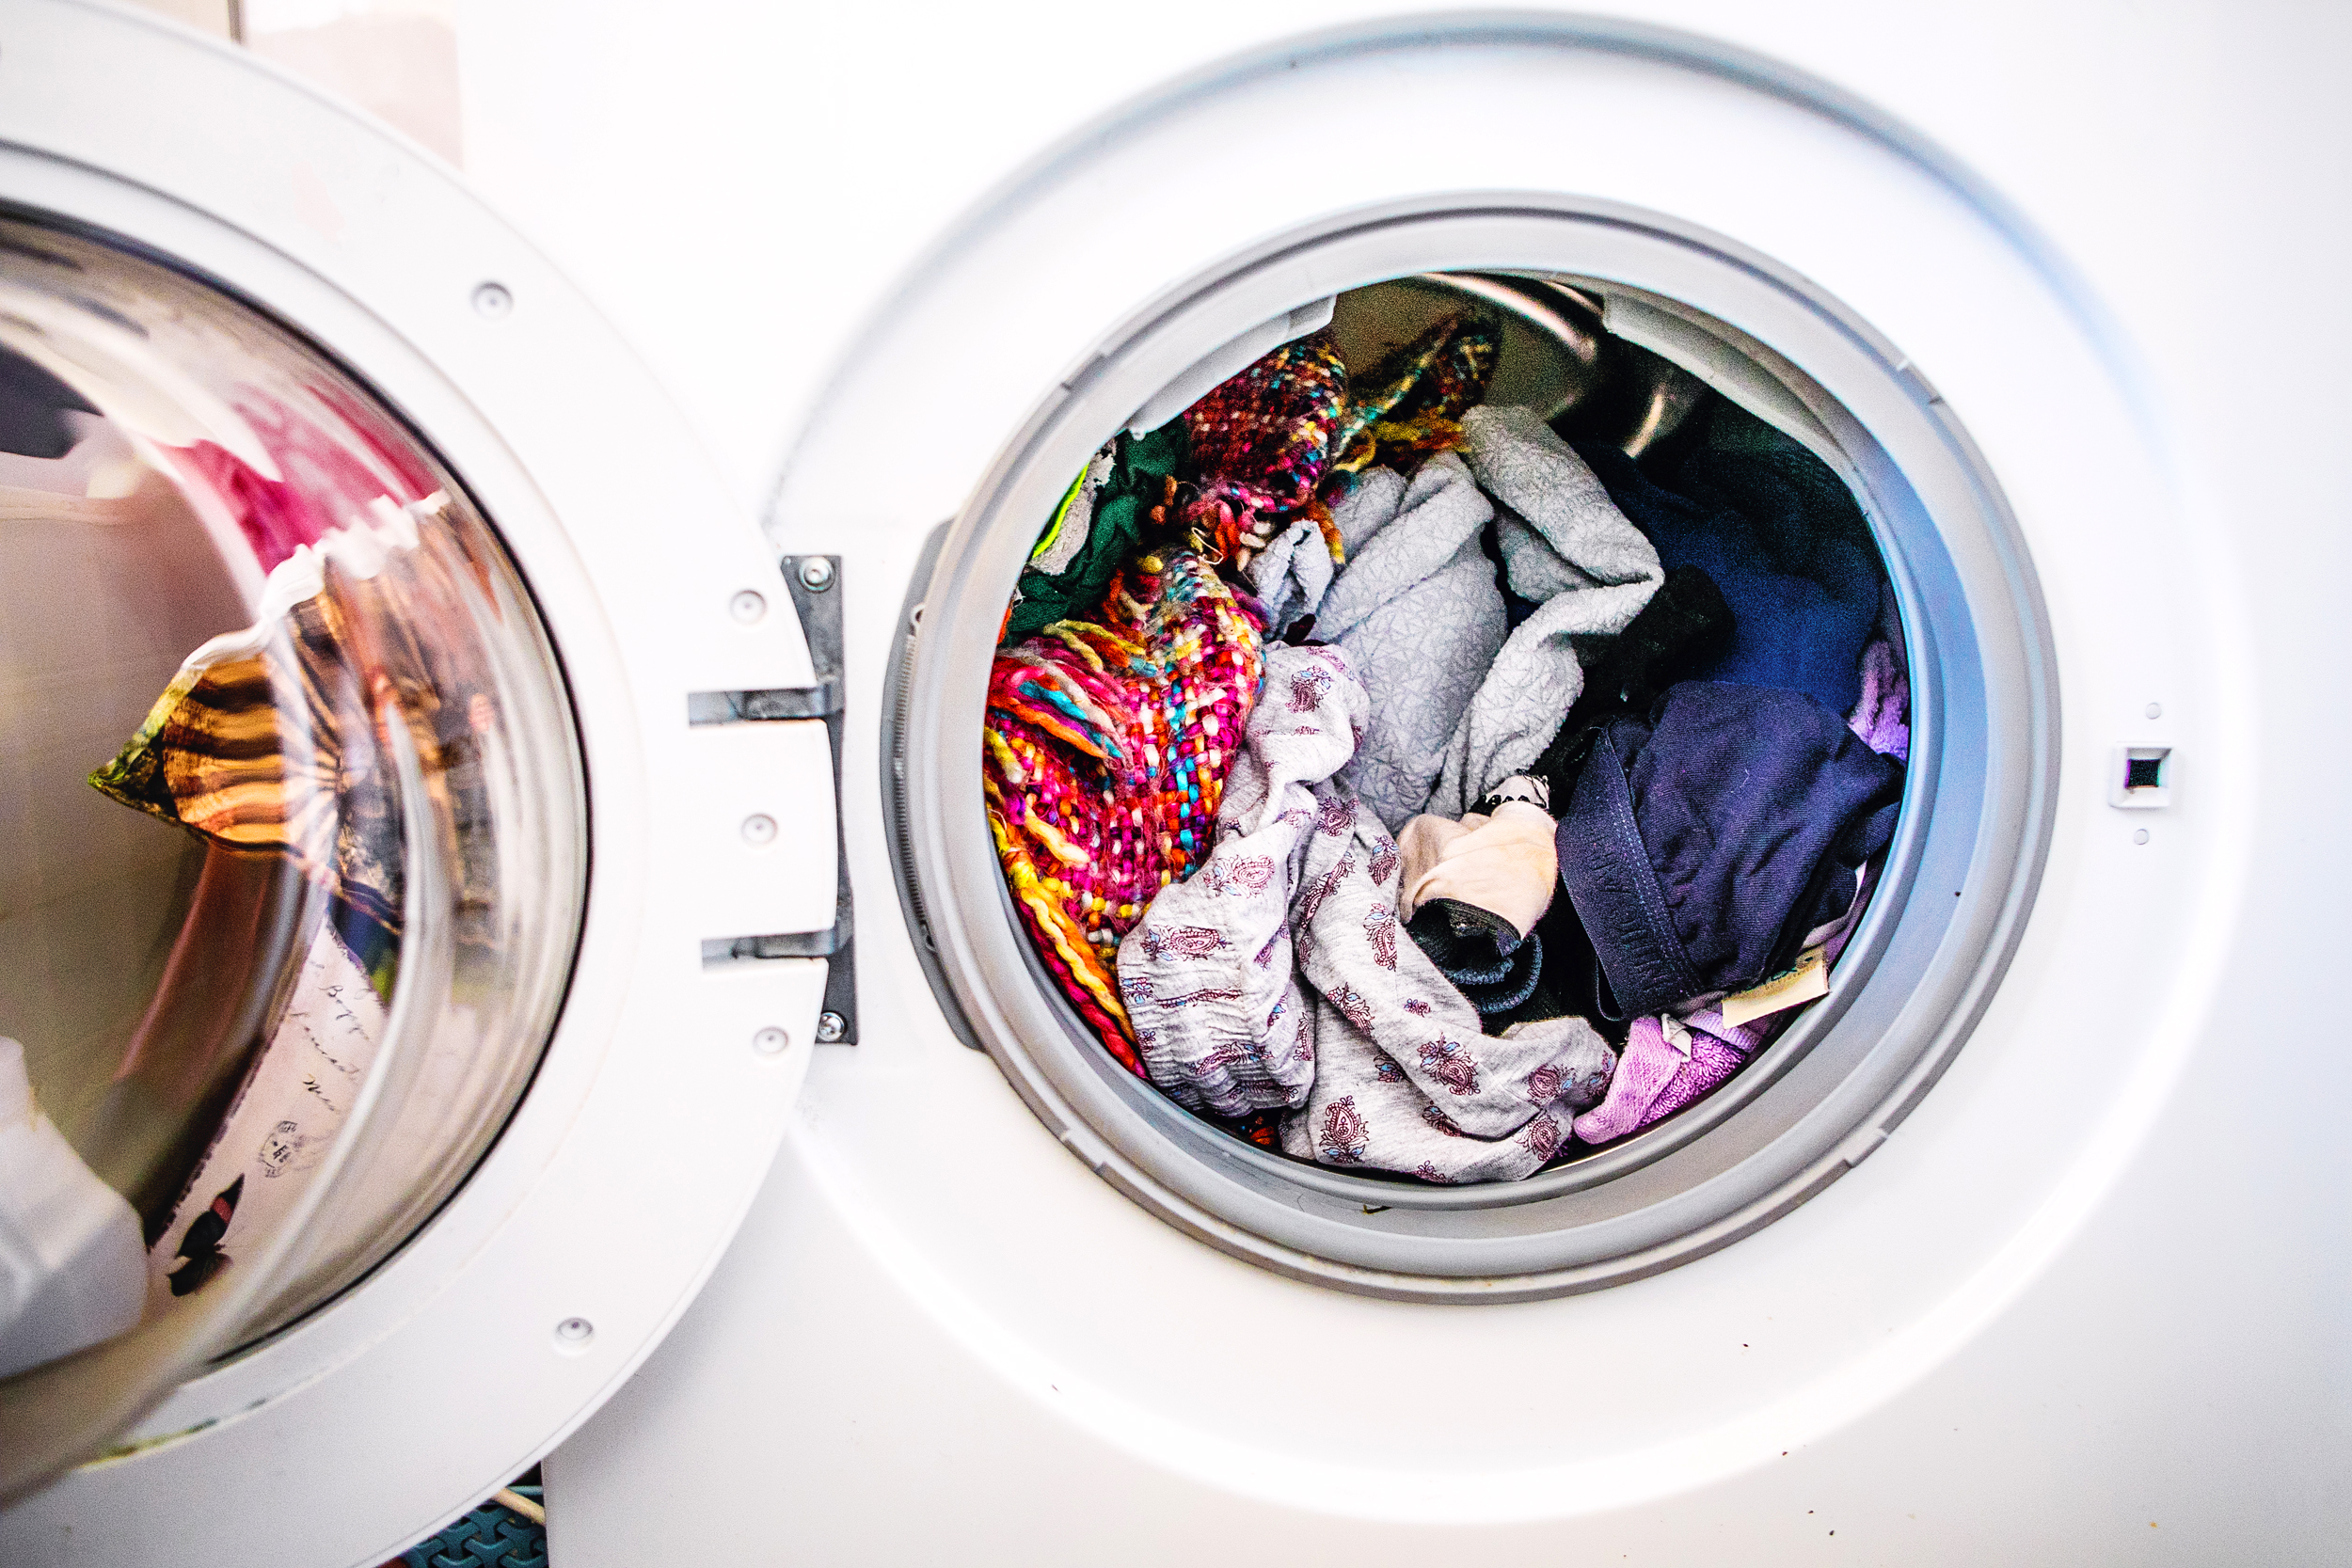 How To Make Your Clothes Smell Good In The Dryer how to get the smell out of gym clothes